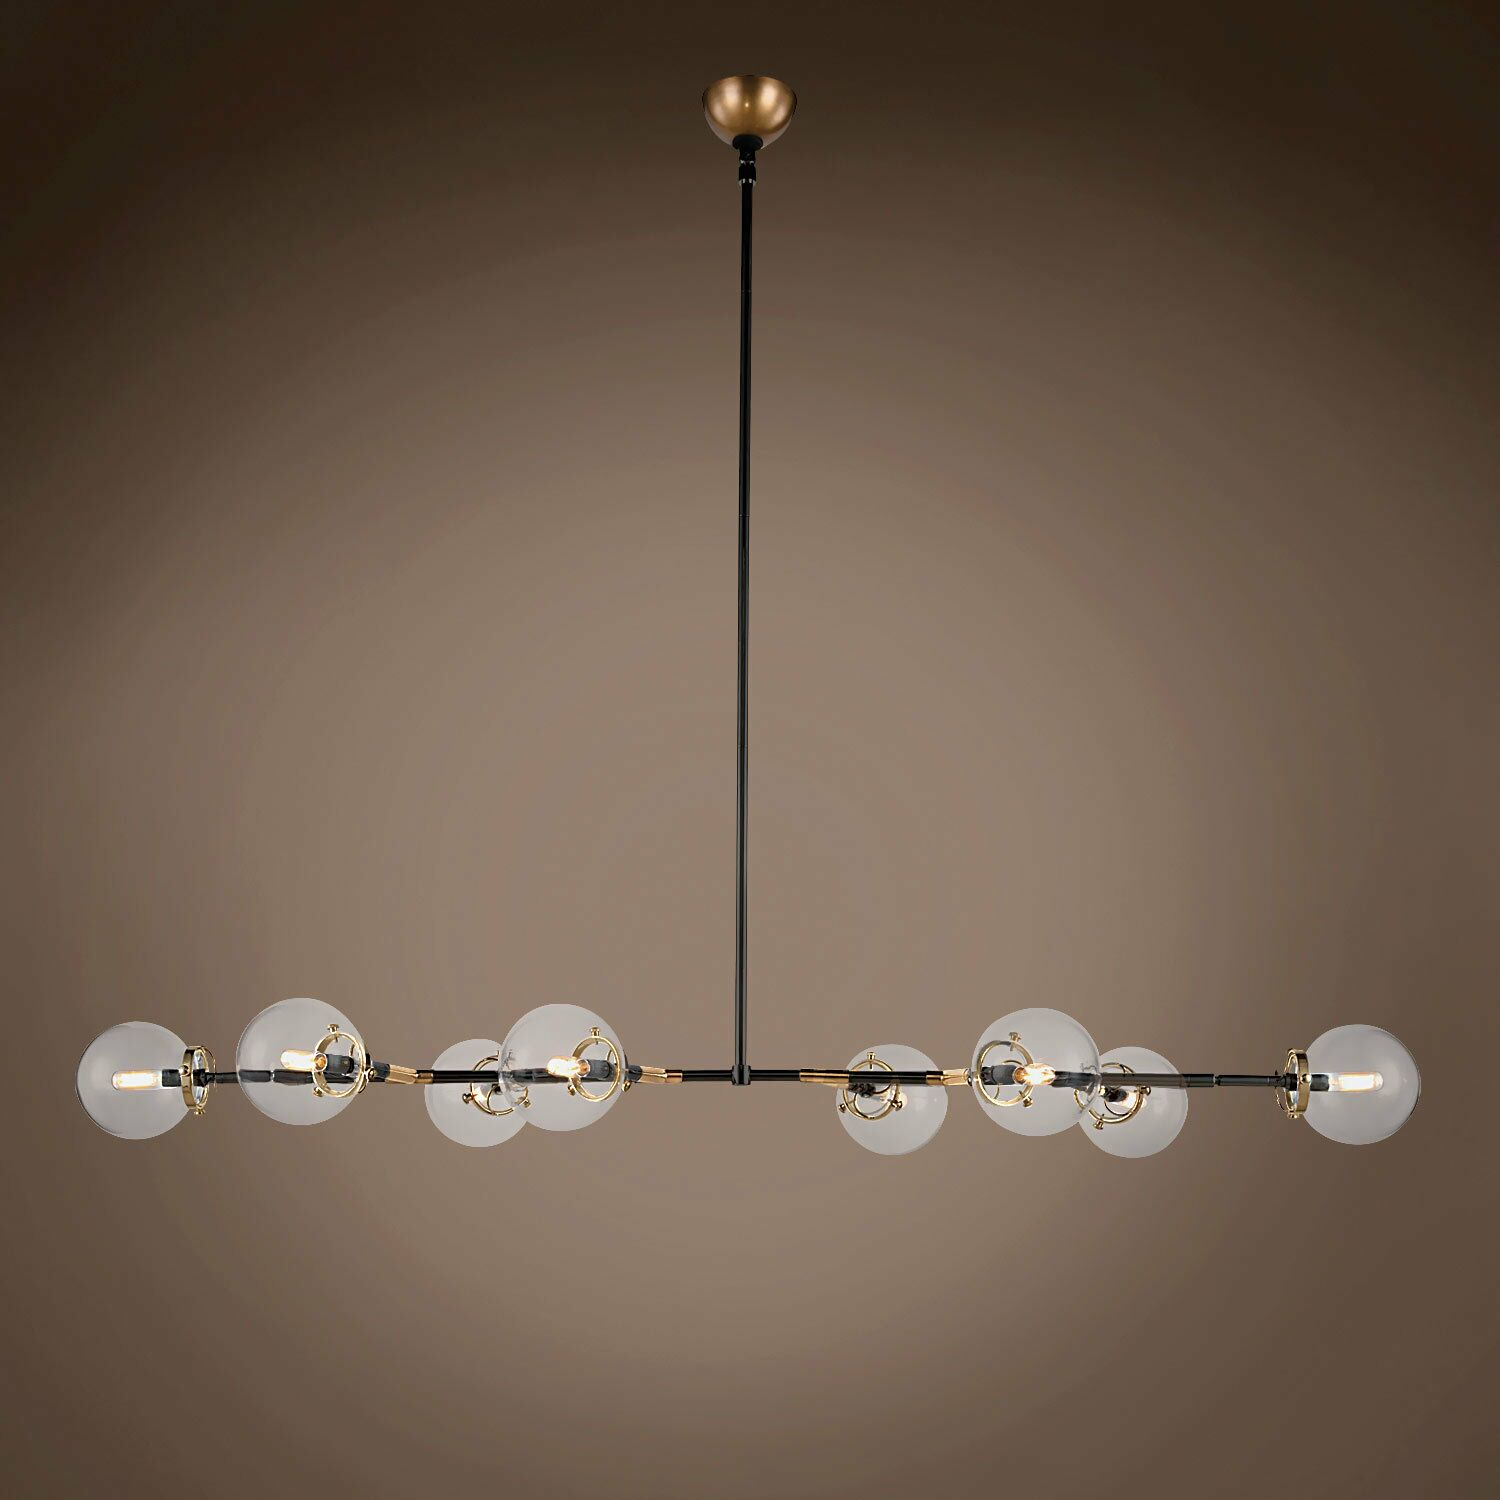 Chairez 8-Light Chandelier Finish: Burnished Brass